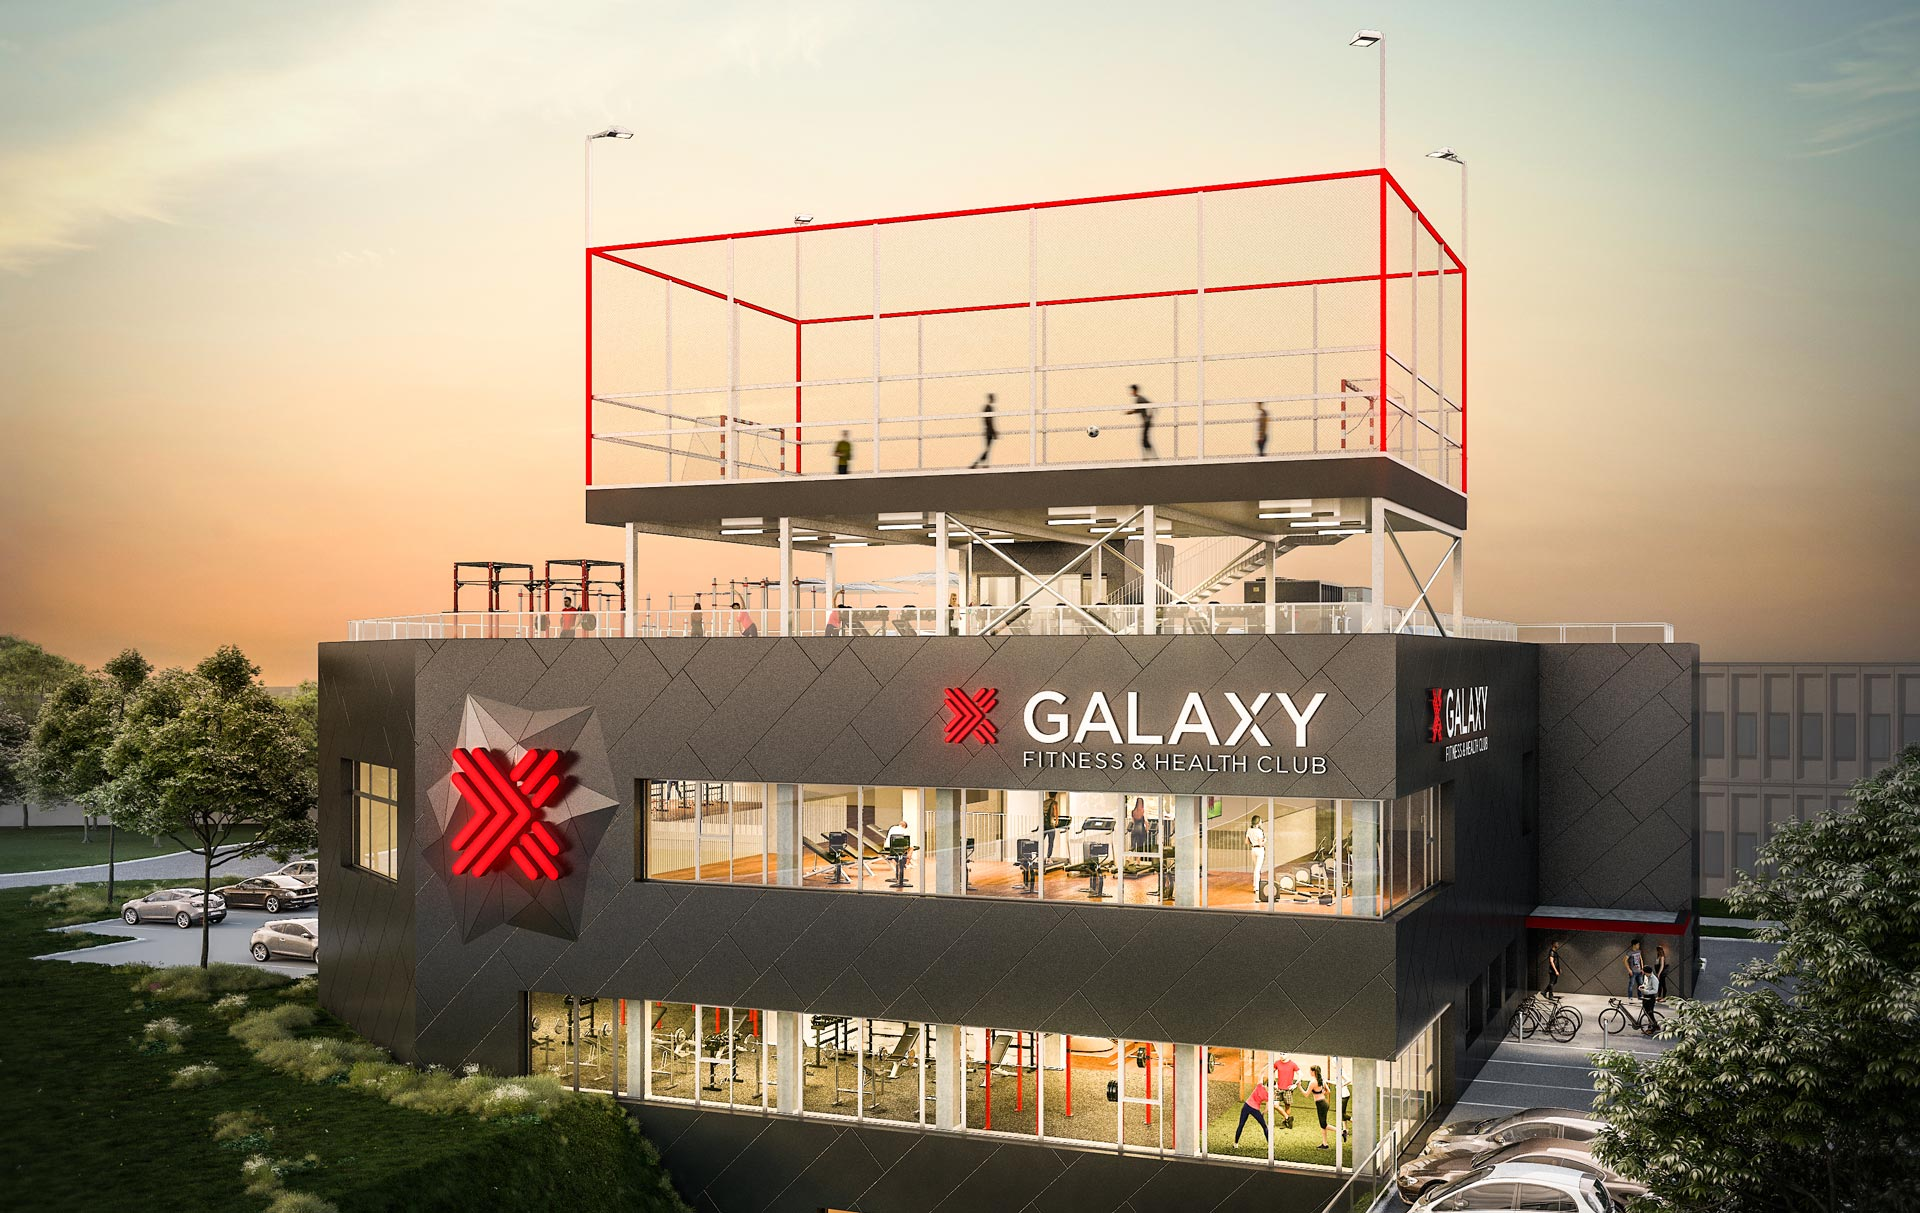 Rendering des Galaxy Fitness and Health Club Projekts